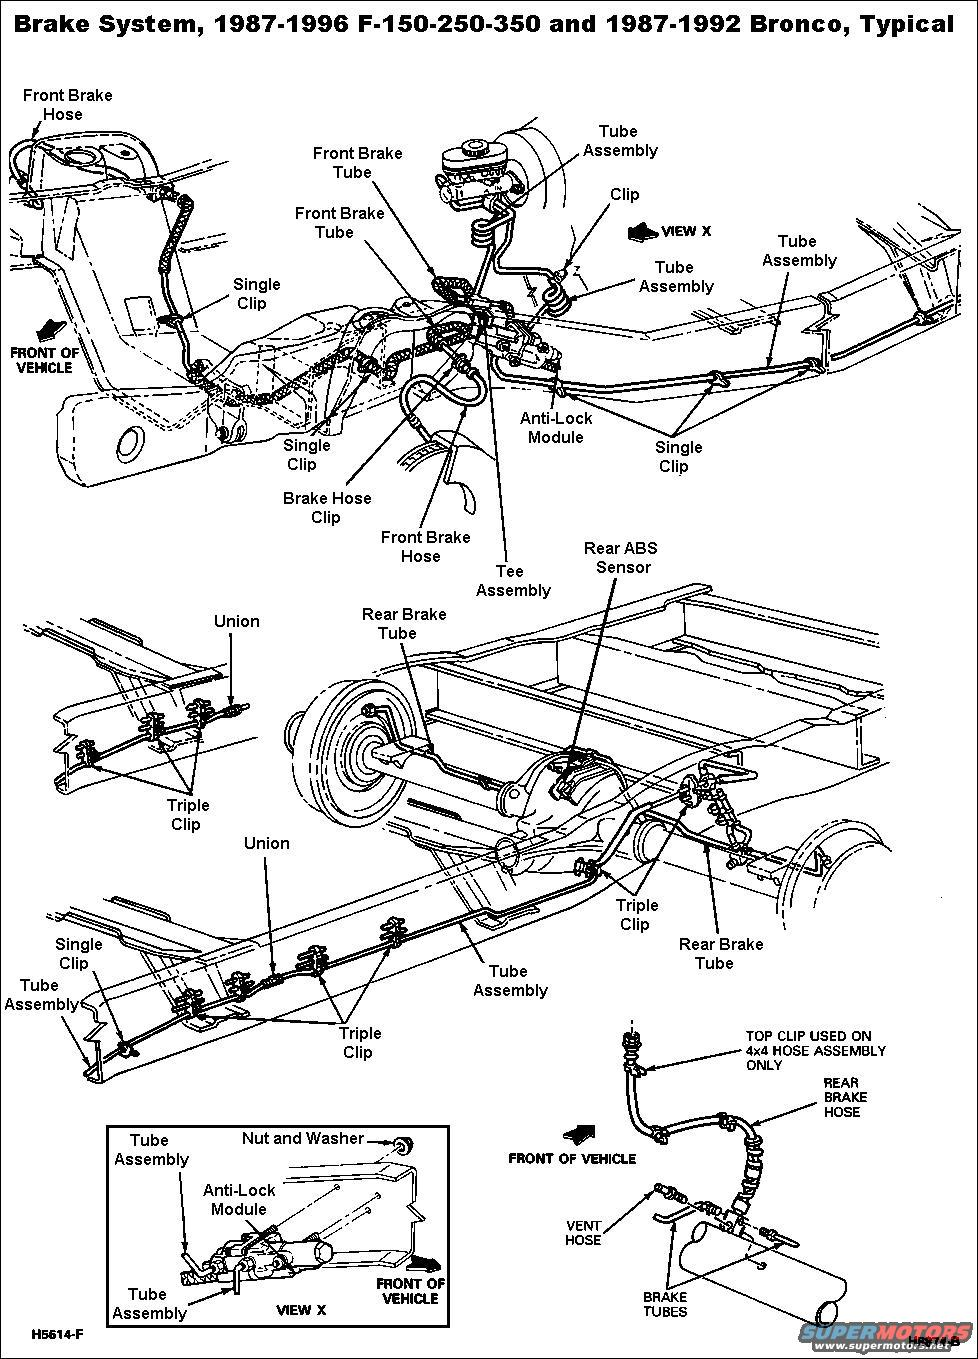 Acura Tl Stereo Wiring Diagram Manual Of 1999 Cl 1992 Ford F 150 Light Auto 2004